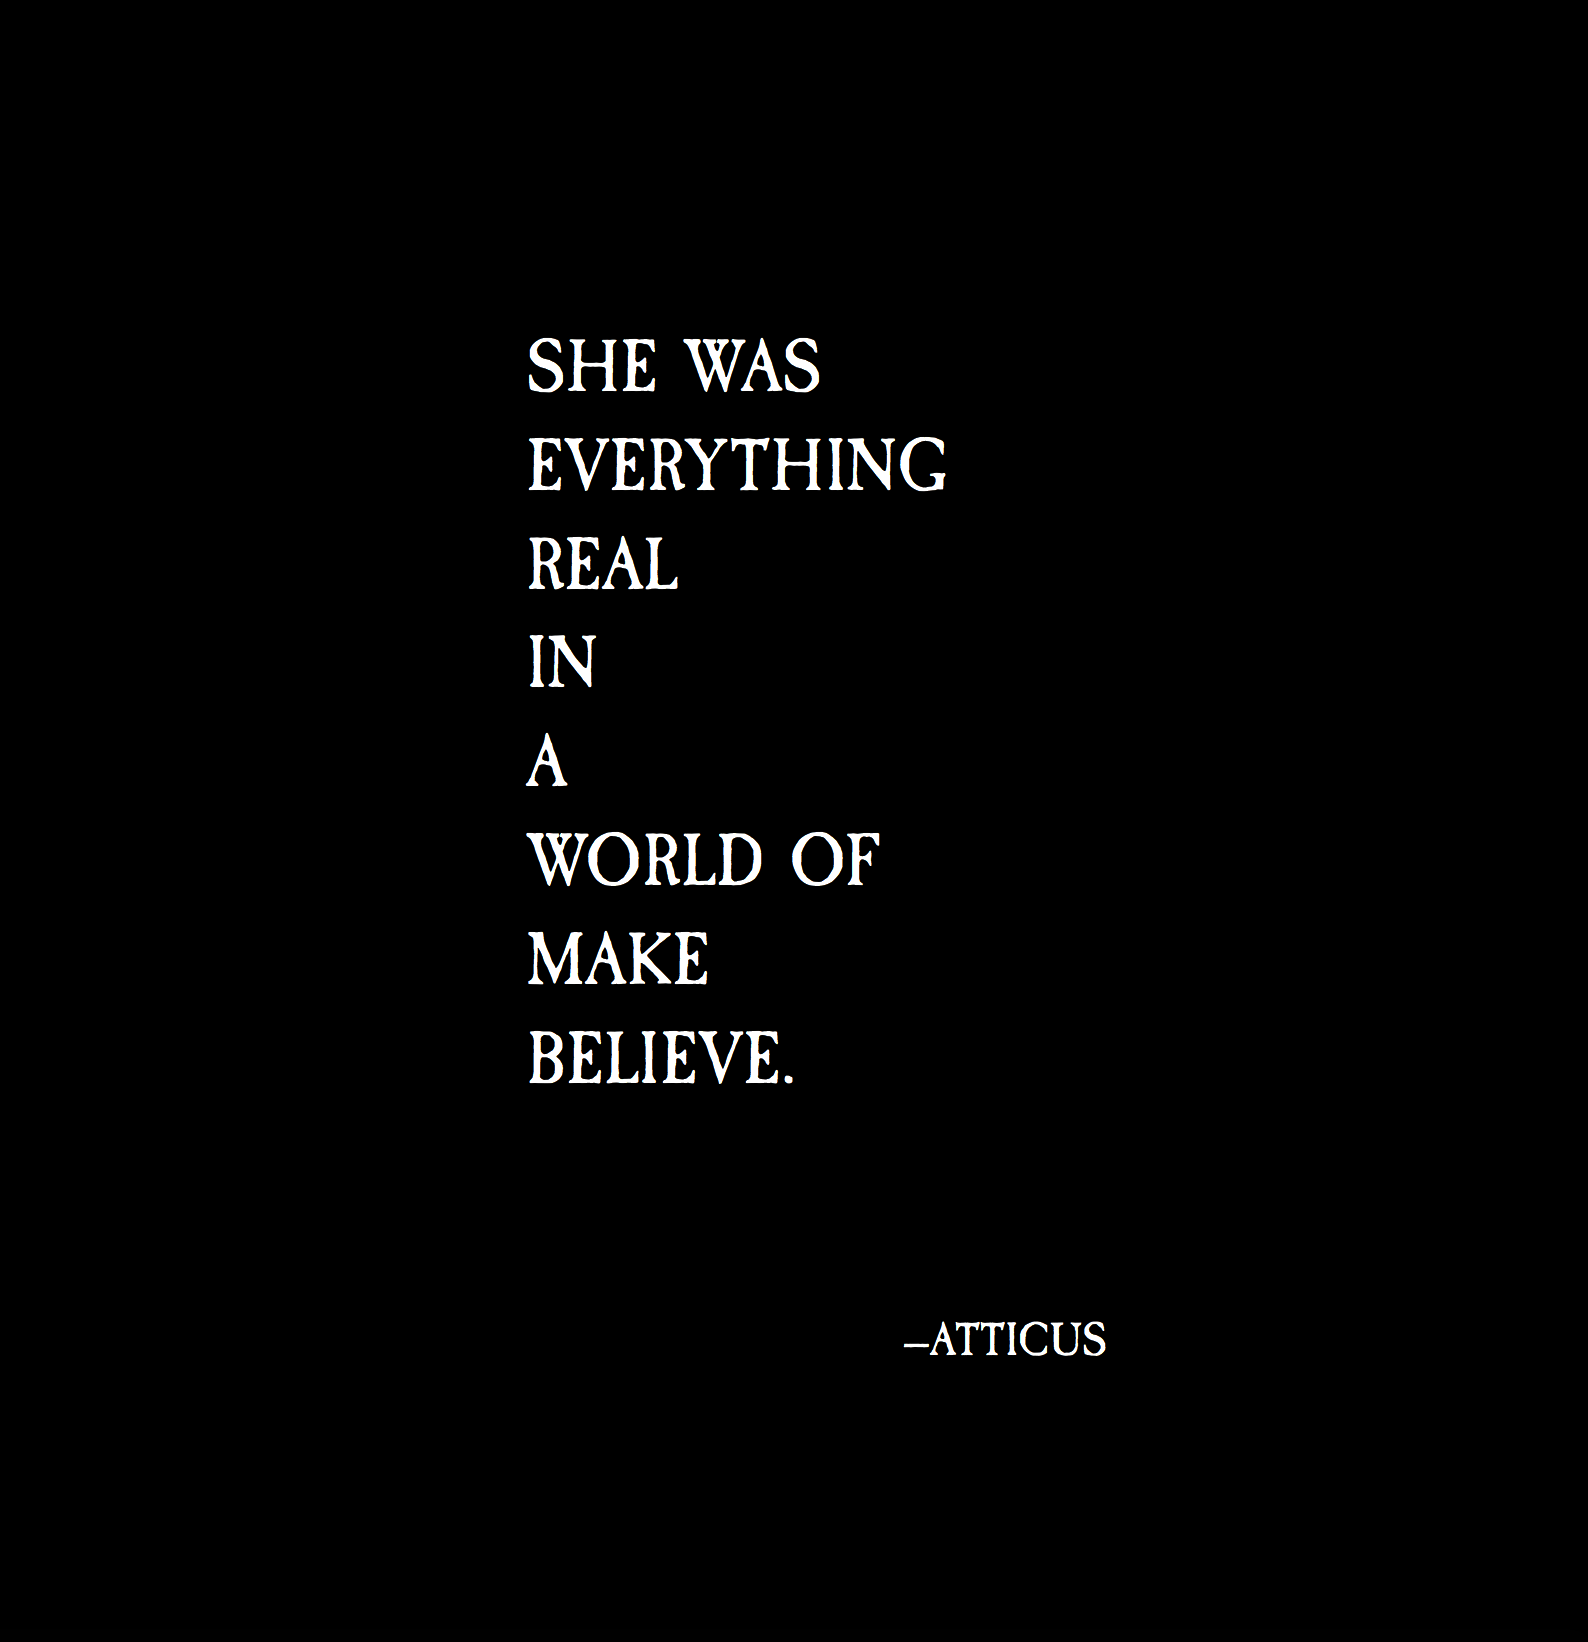 all-poetry-love-poems-short-poems-famous-poetry-atticus-poetry-blog she was everything real in a world of make believe